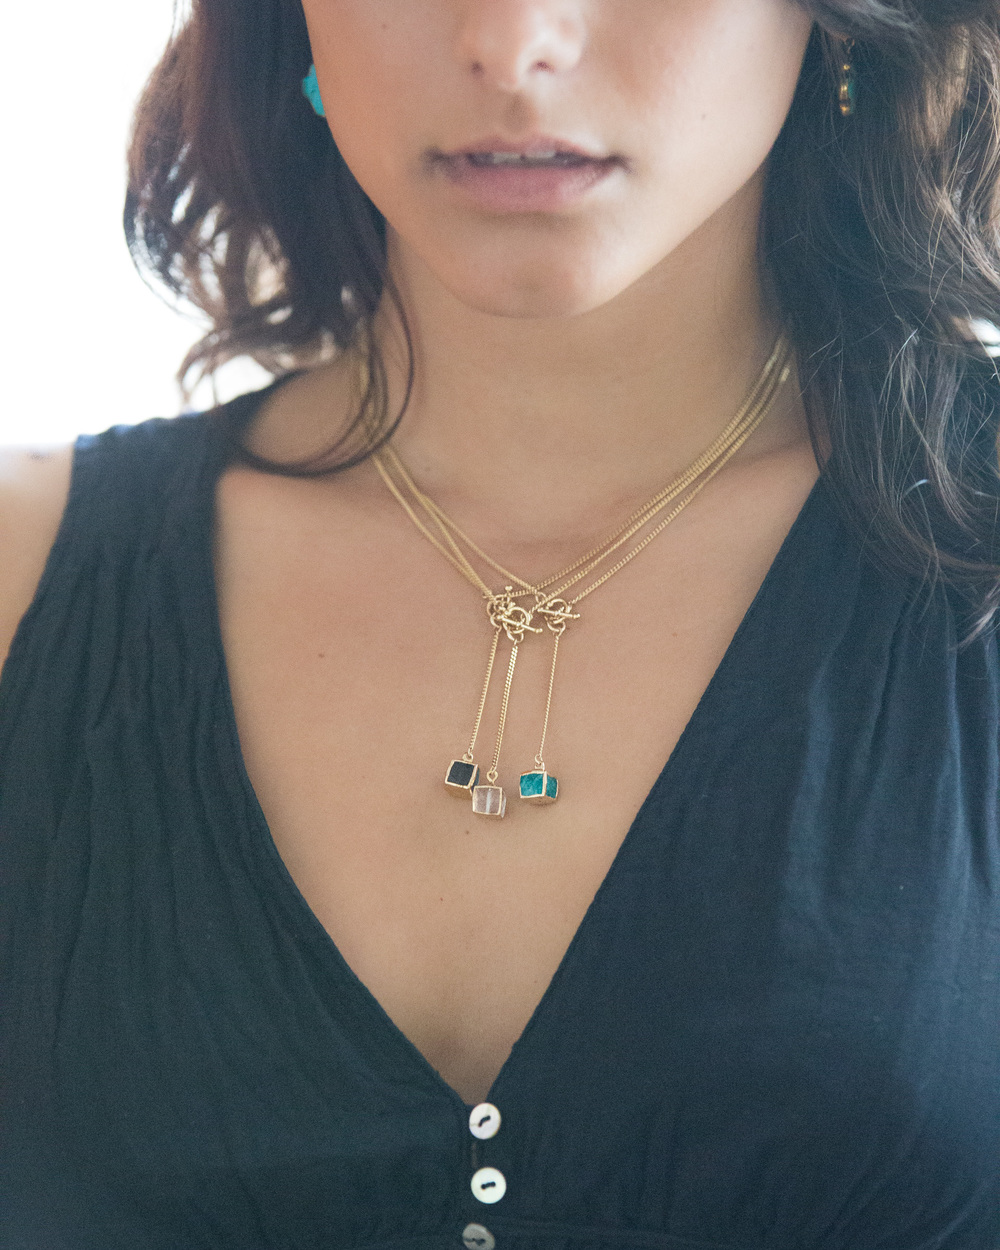 Necklace3square_1forweb.jpg